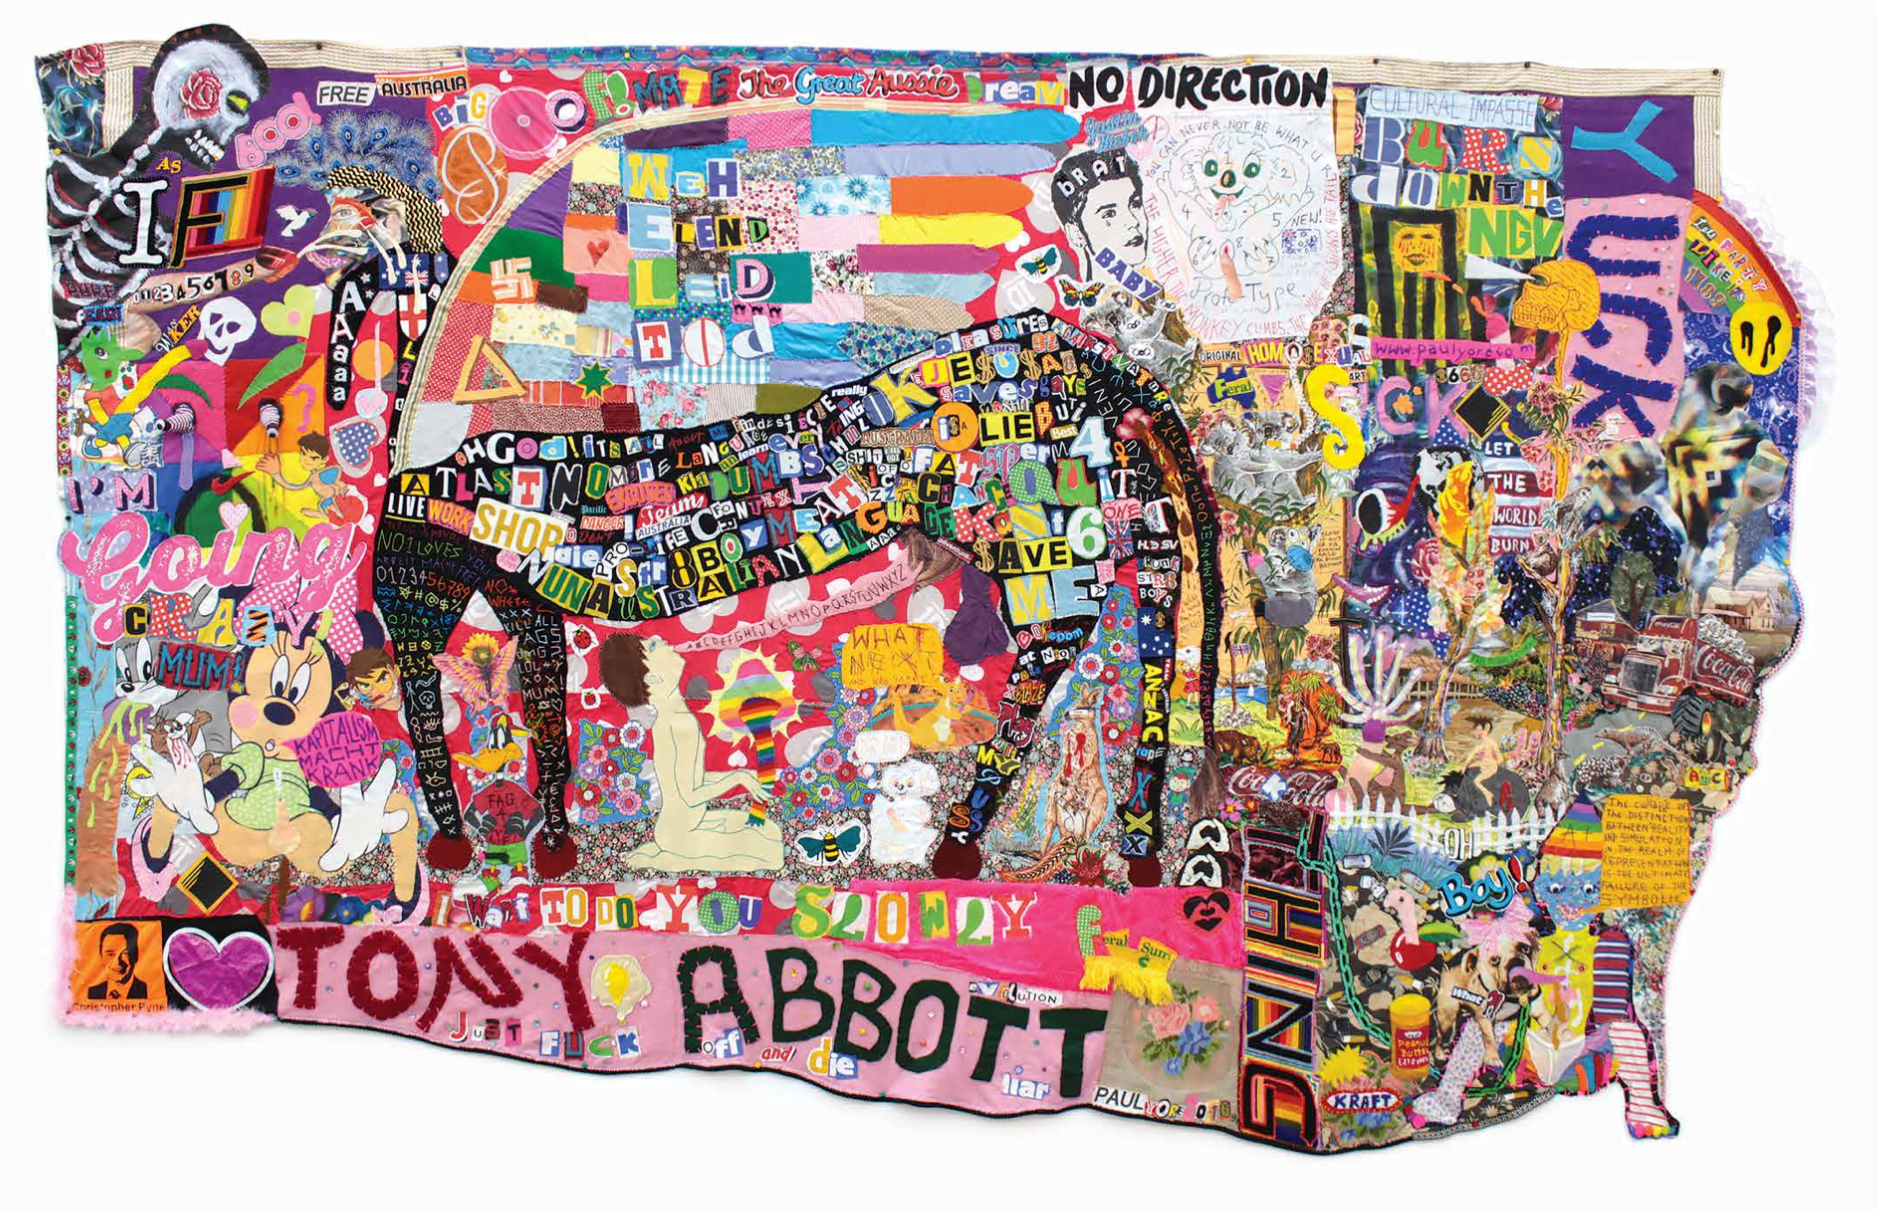 Paul Yore. What a Fucking Horrid Mess 2016. Purchased with Ararat Rural City Council aquisition allocation, 2016. Ararat Gallery TAMA Collection. © the artist.